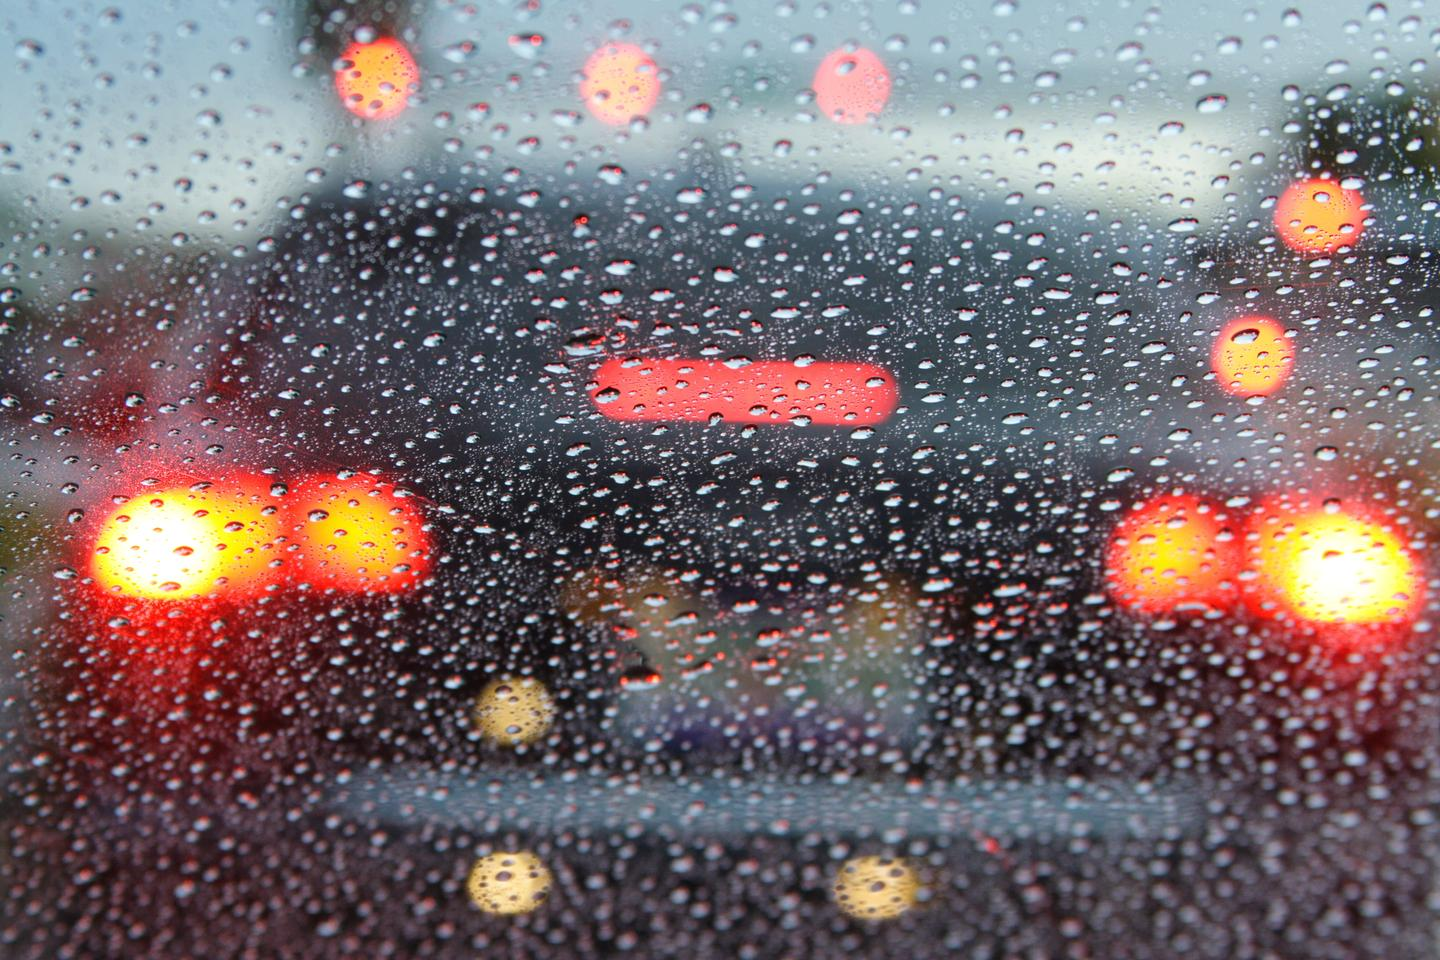 Ford's Electronic Brake Light system alerts drivers to other vehicles that are braking in front of them (Photo: Shutterstock)